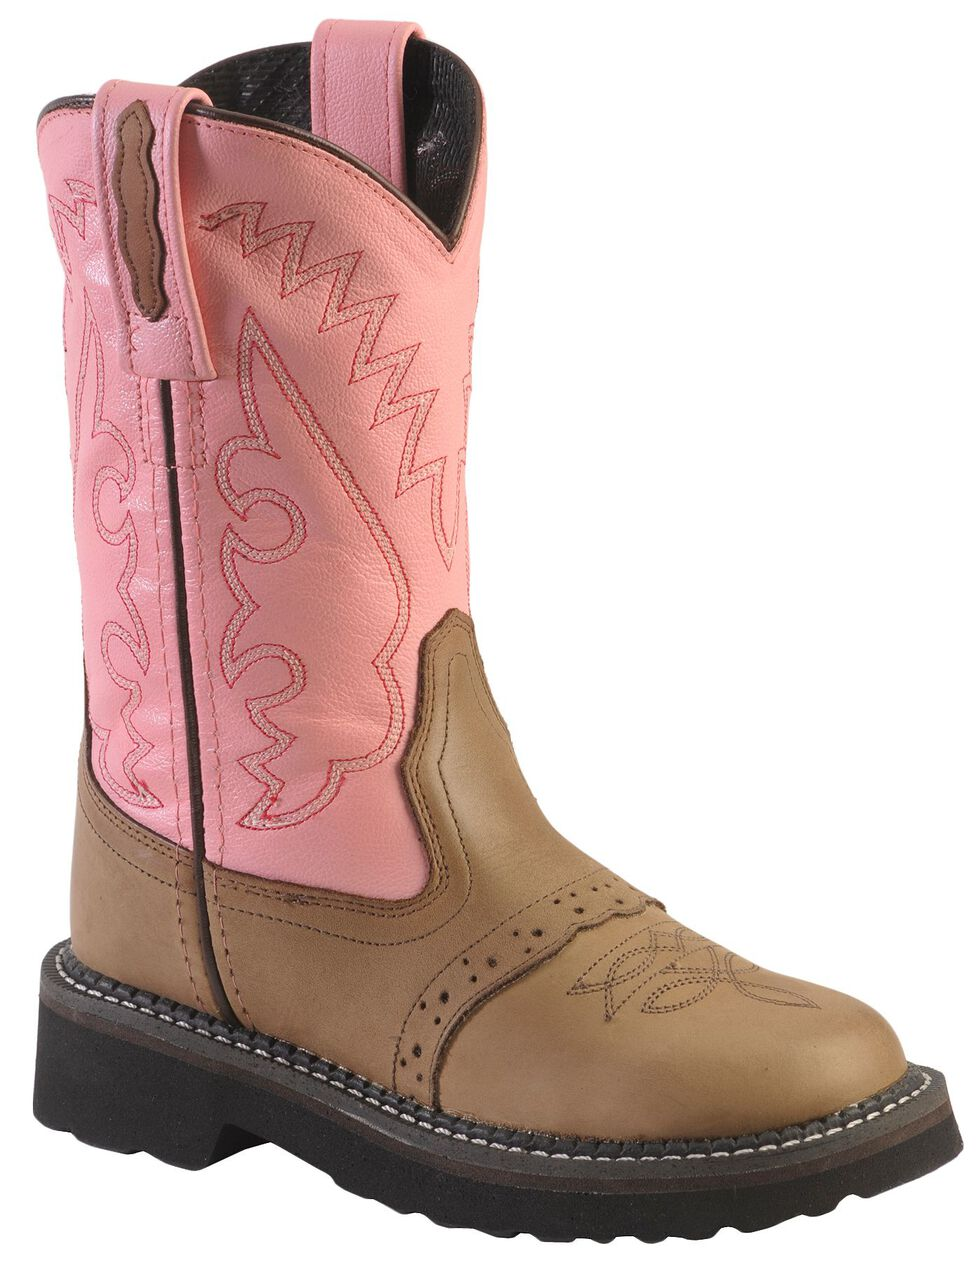 Old West Girls' Light Pink Saddle Vamp Cowgirl Boots - Round Toe, Apache Tan, hi-res